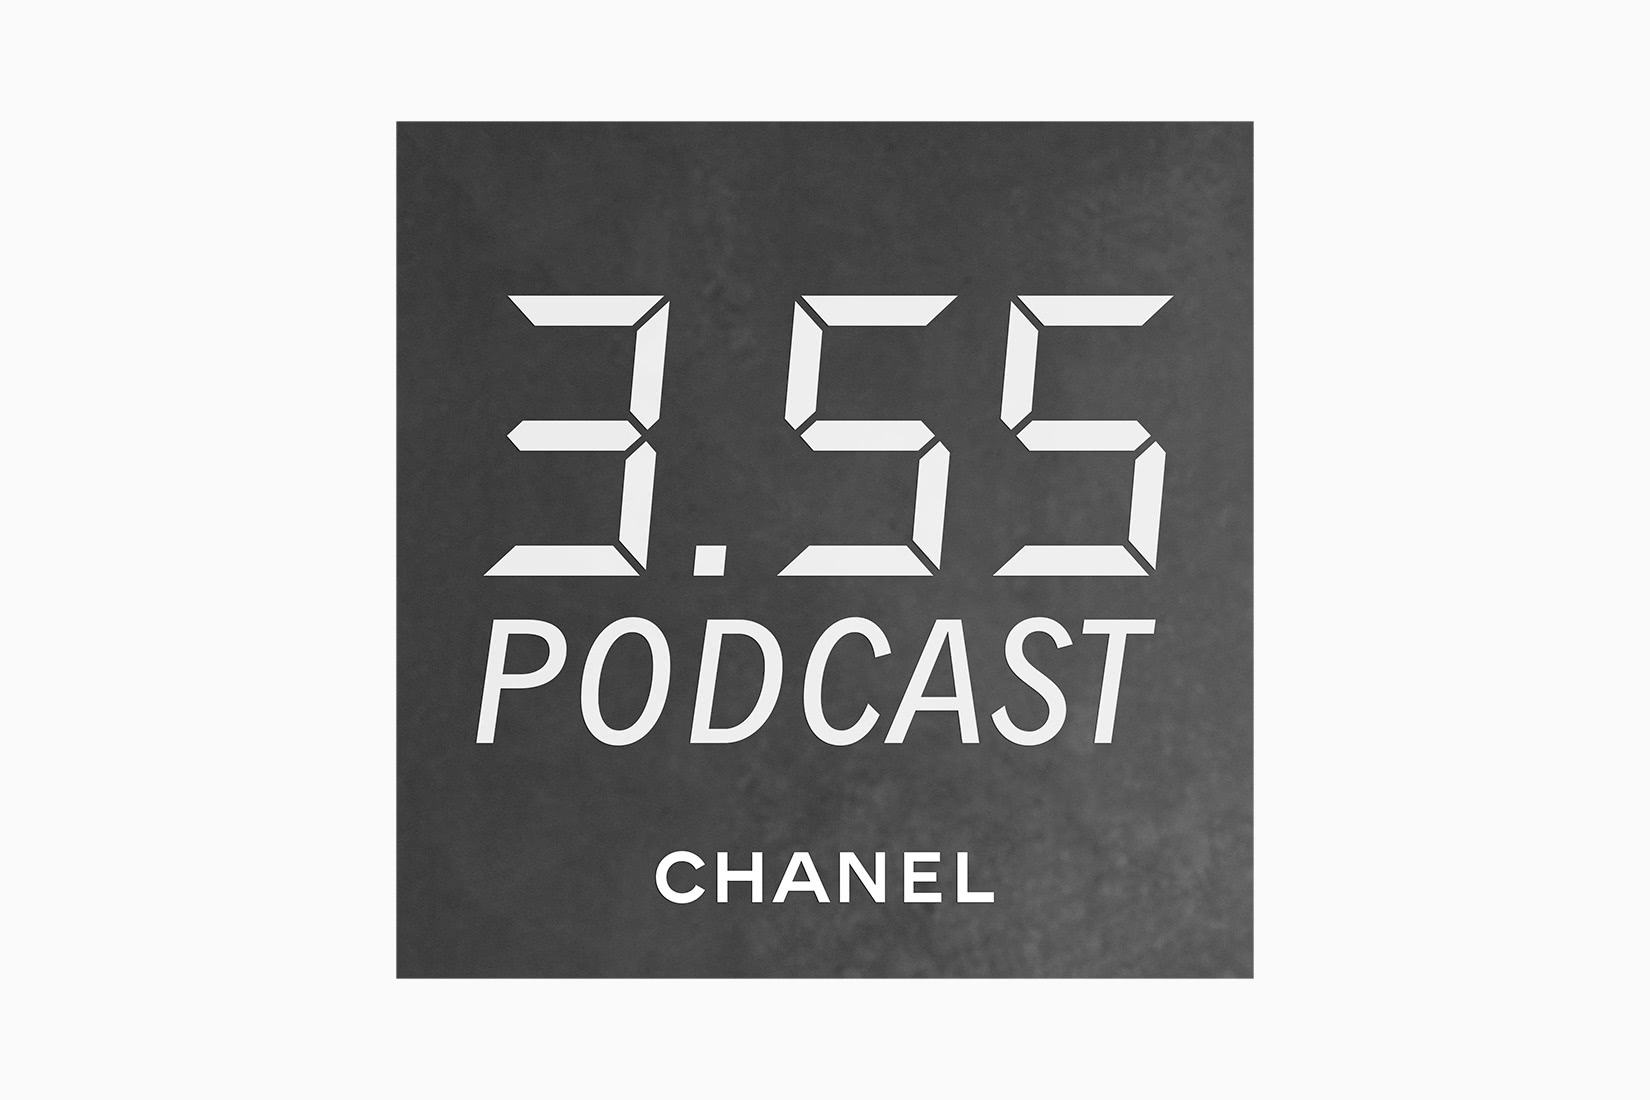 best podcasts 3.55 chanel luxe digital